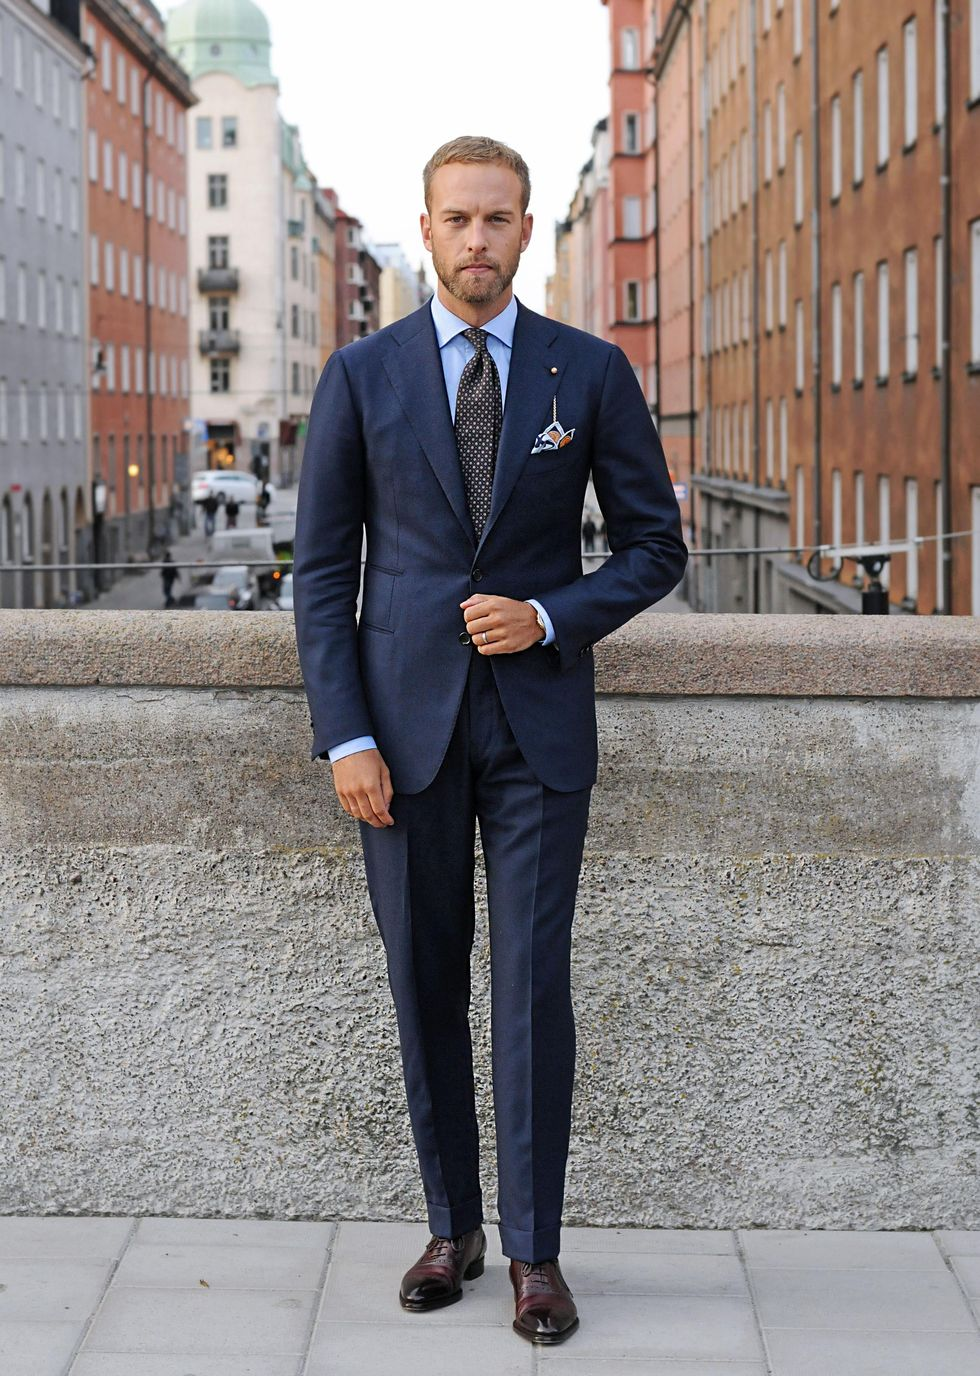 The Theory of How to Wear a Suit